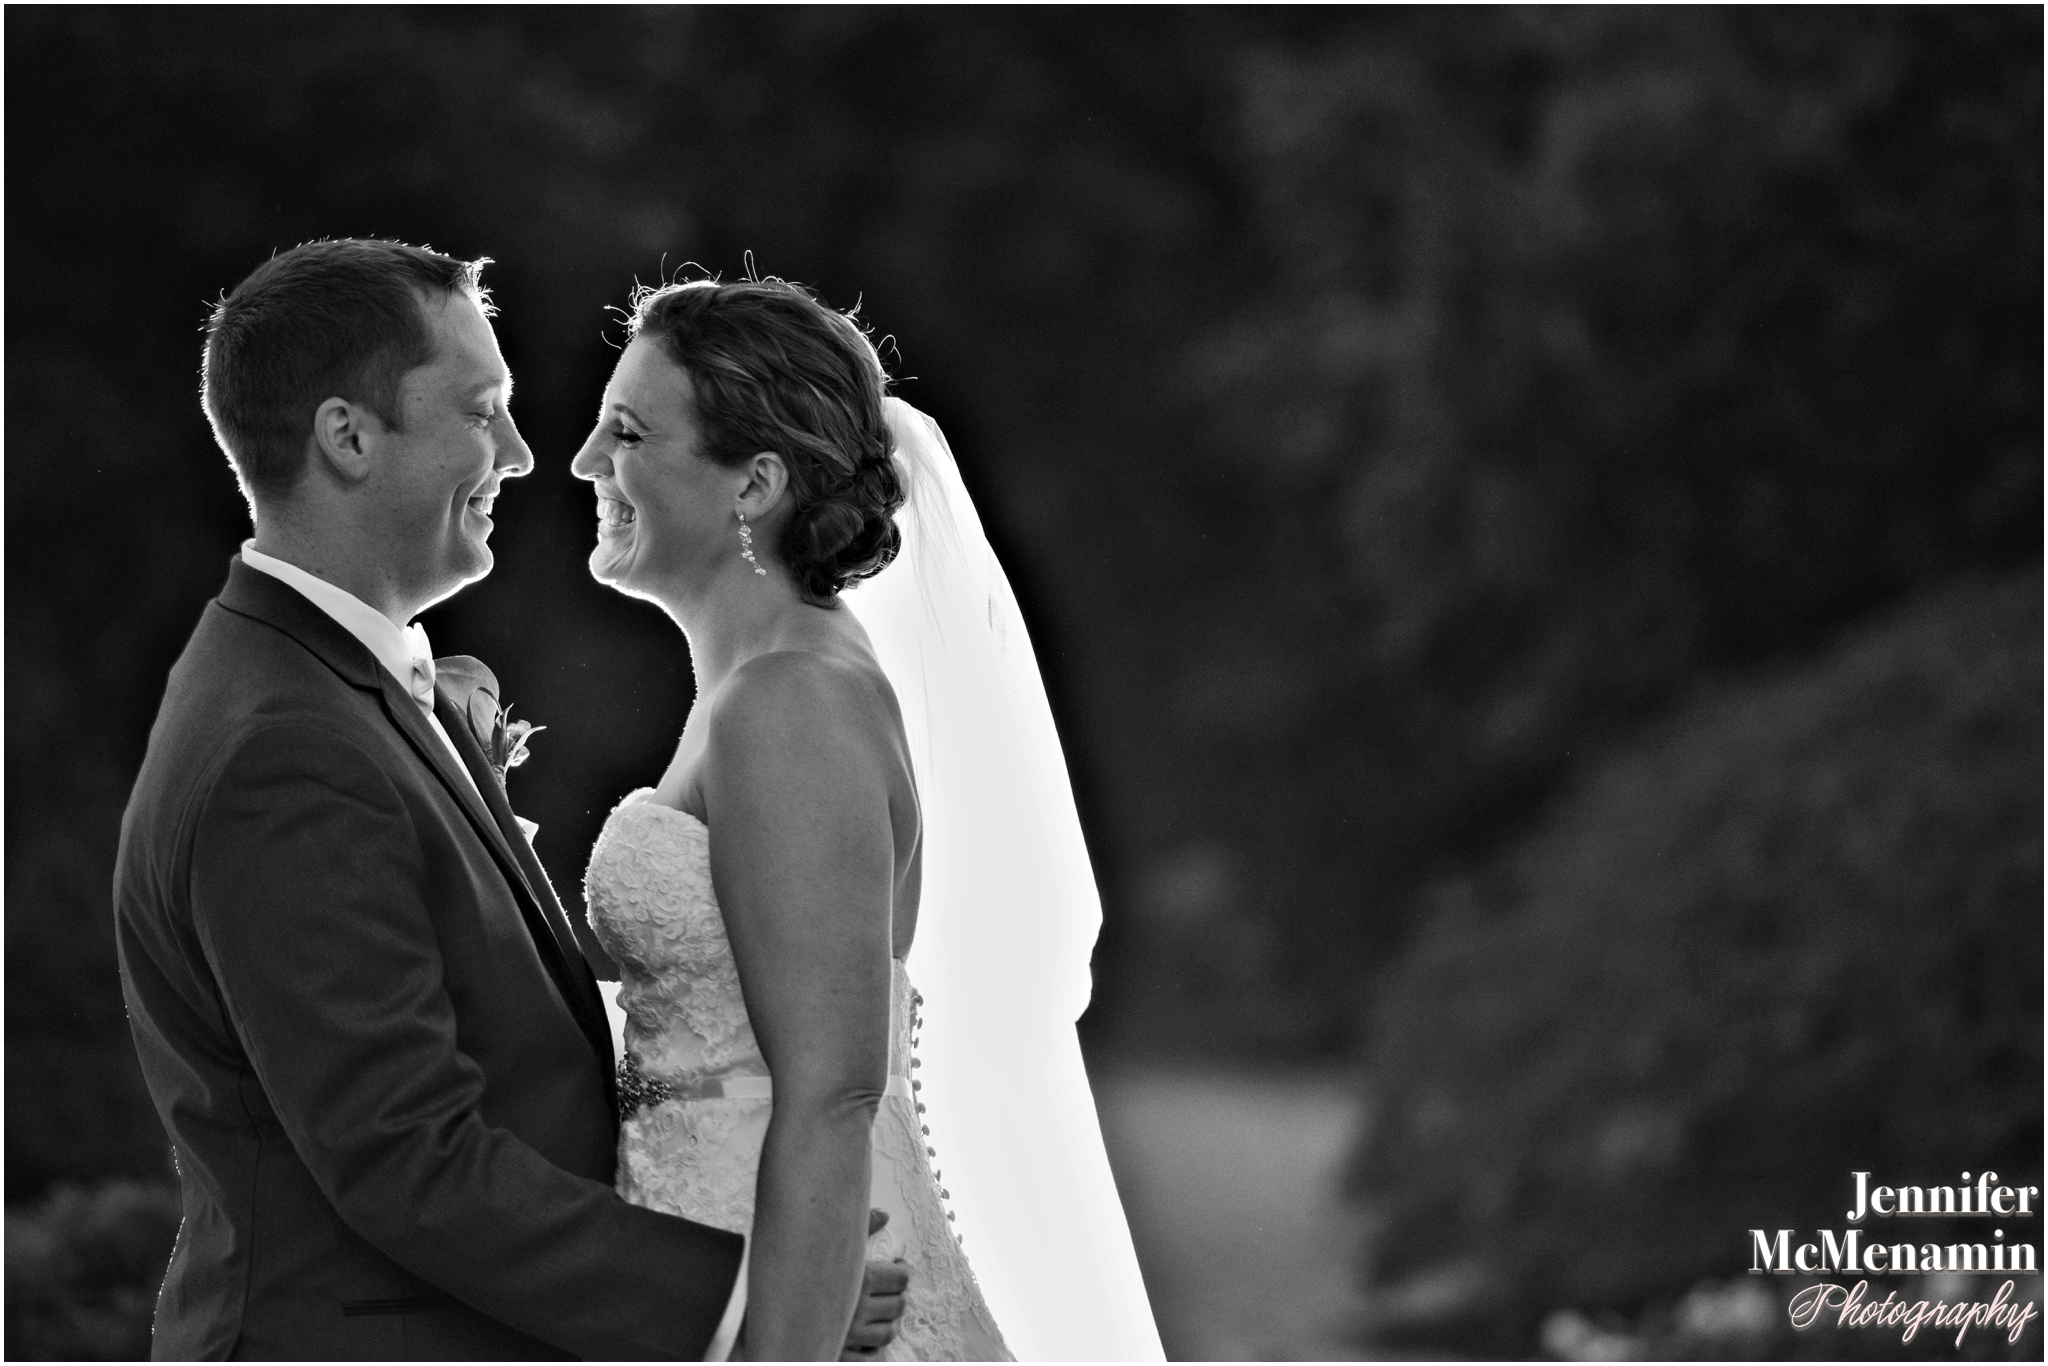 001-HenningMiller_02366bw-0487_JenniferMcMenaminPhotography_Evergreen-Museum-And-Carriage-House_Evergreen-wedding_Baltimore-wedding-photographer_Baltimore-wedding-photography